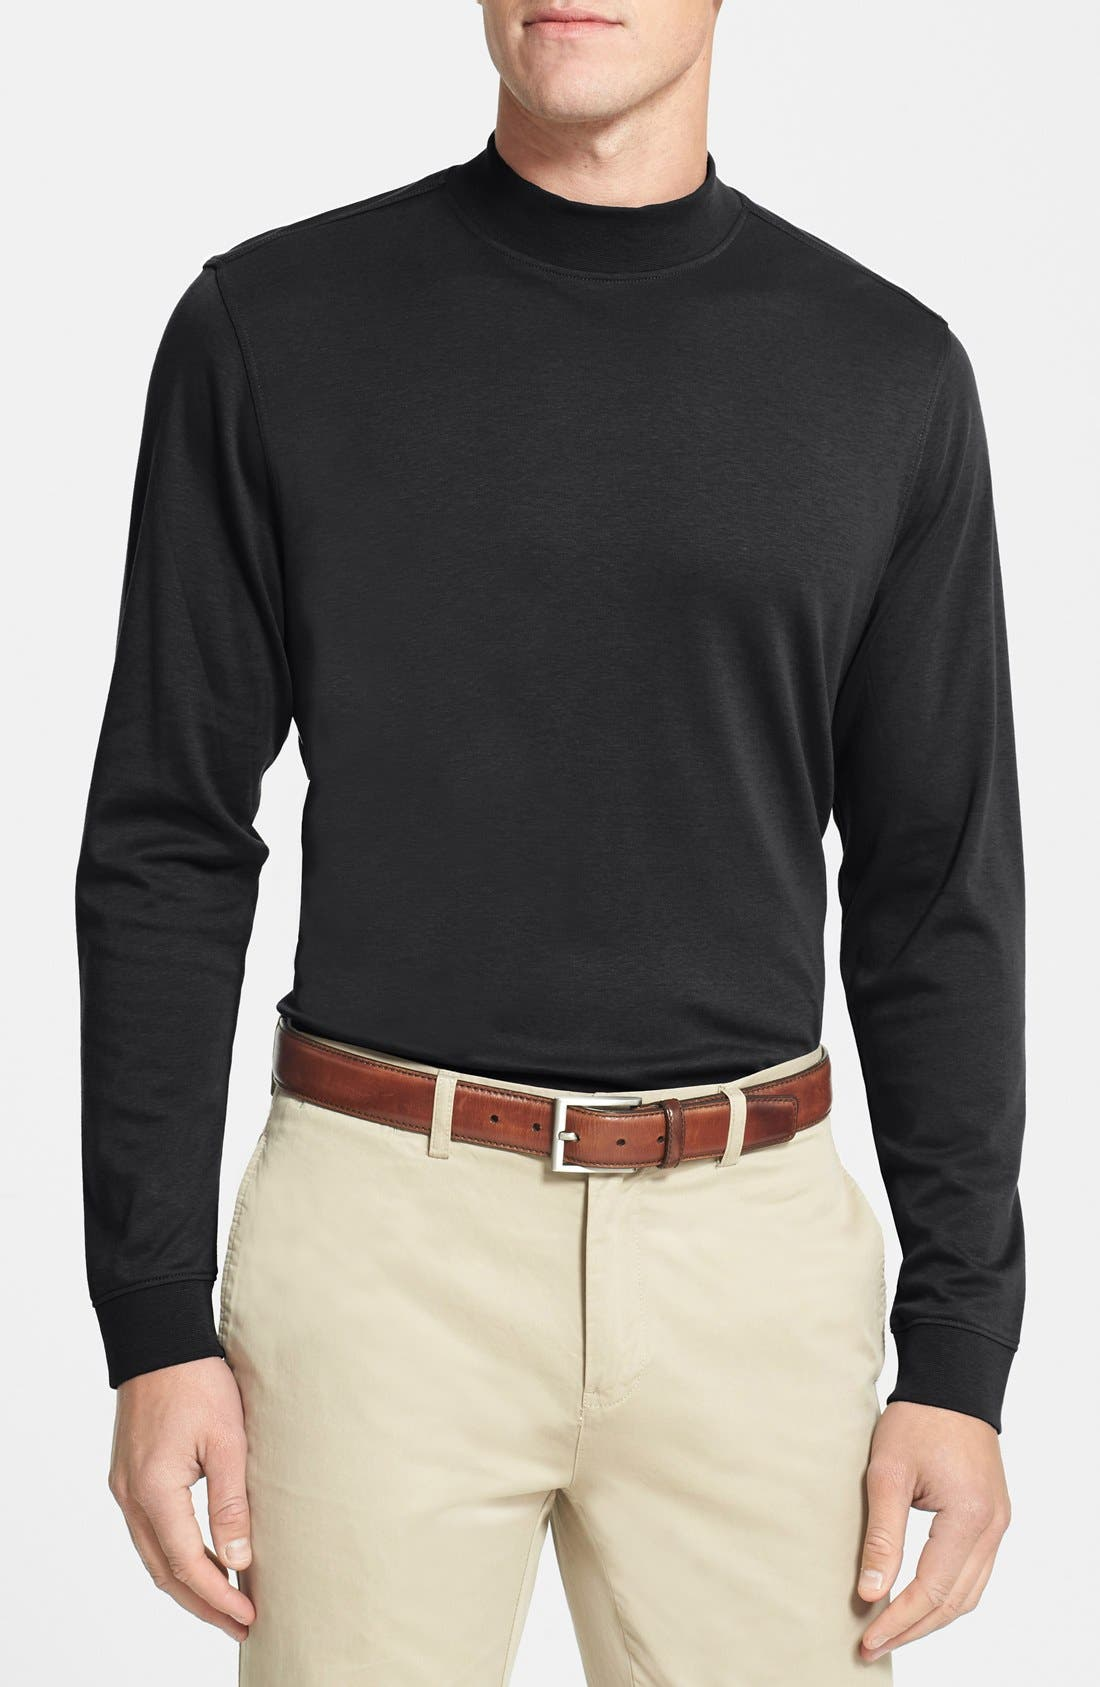 Main Image - Cutter & Buck Belfair Long Sleeve Mock Neck Pima Cotton T-Shirt